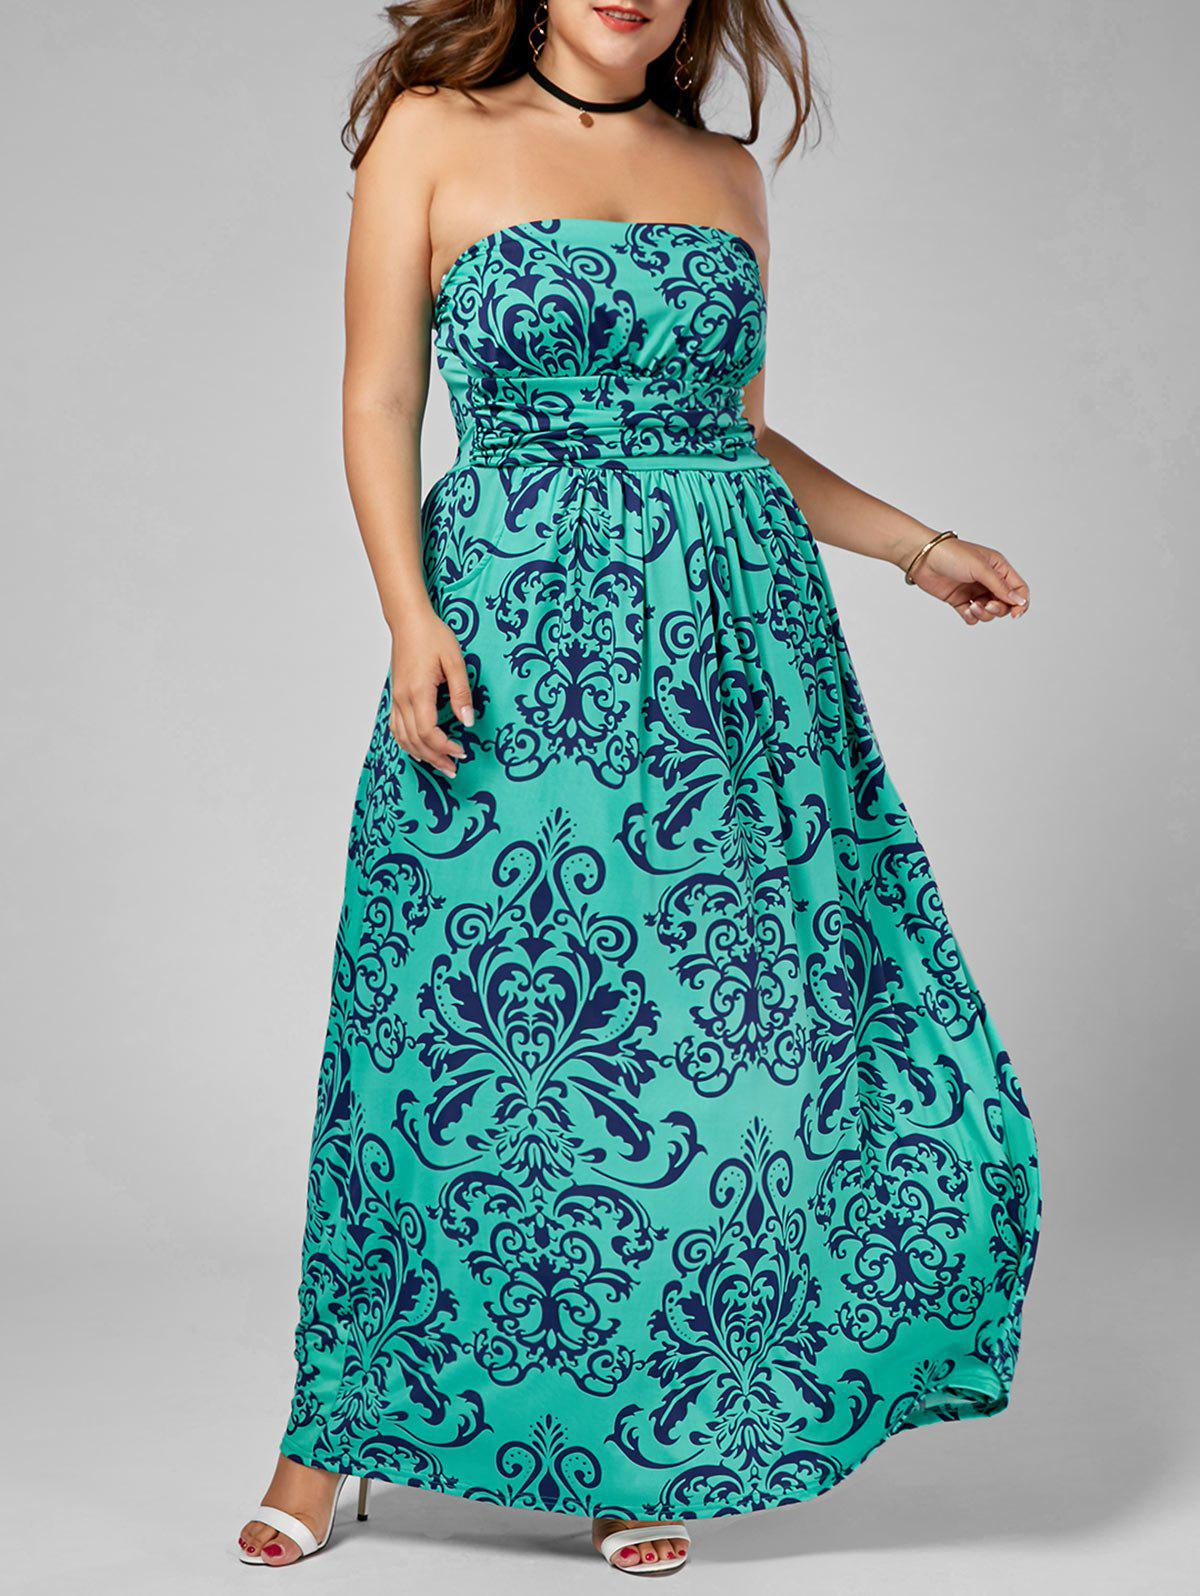 Plus Size Strapless Printed Long Summer DressWOMEN<br><br>Size: 3XL; Color: MULTI; Style: Cute; Material: Polyester; Silhouette: A-Line; Dresses Length: Floor-Length; Neckline: Strapless; Sleeve Length: Sleeveless; Pattern Type: Print; With Belt: No; Season: Summer; Weight: 0.5200kg; Package Contents: 1 x Dress;